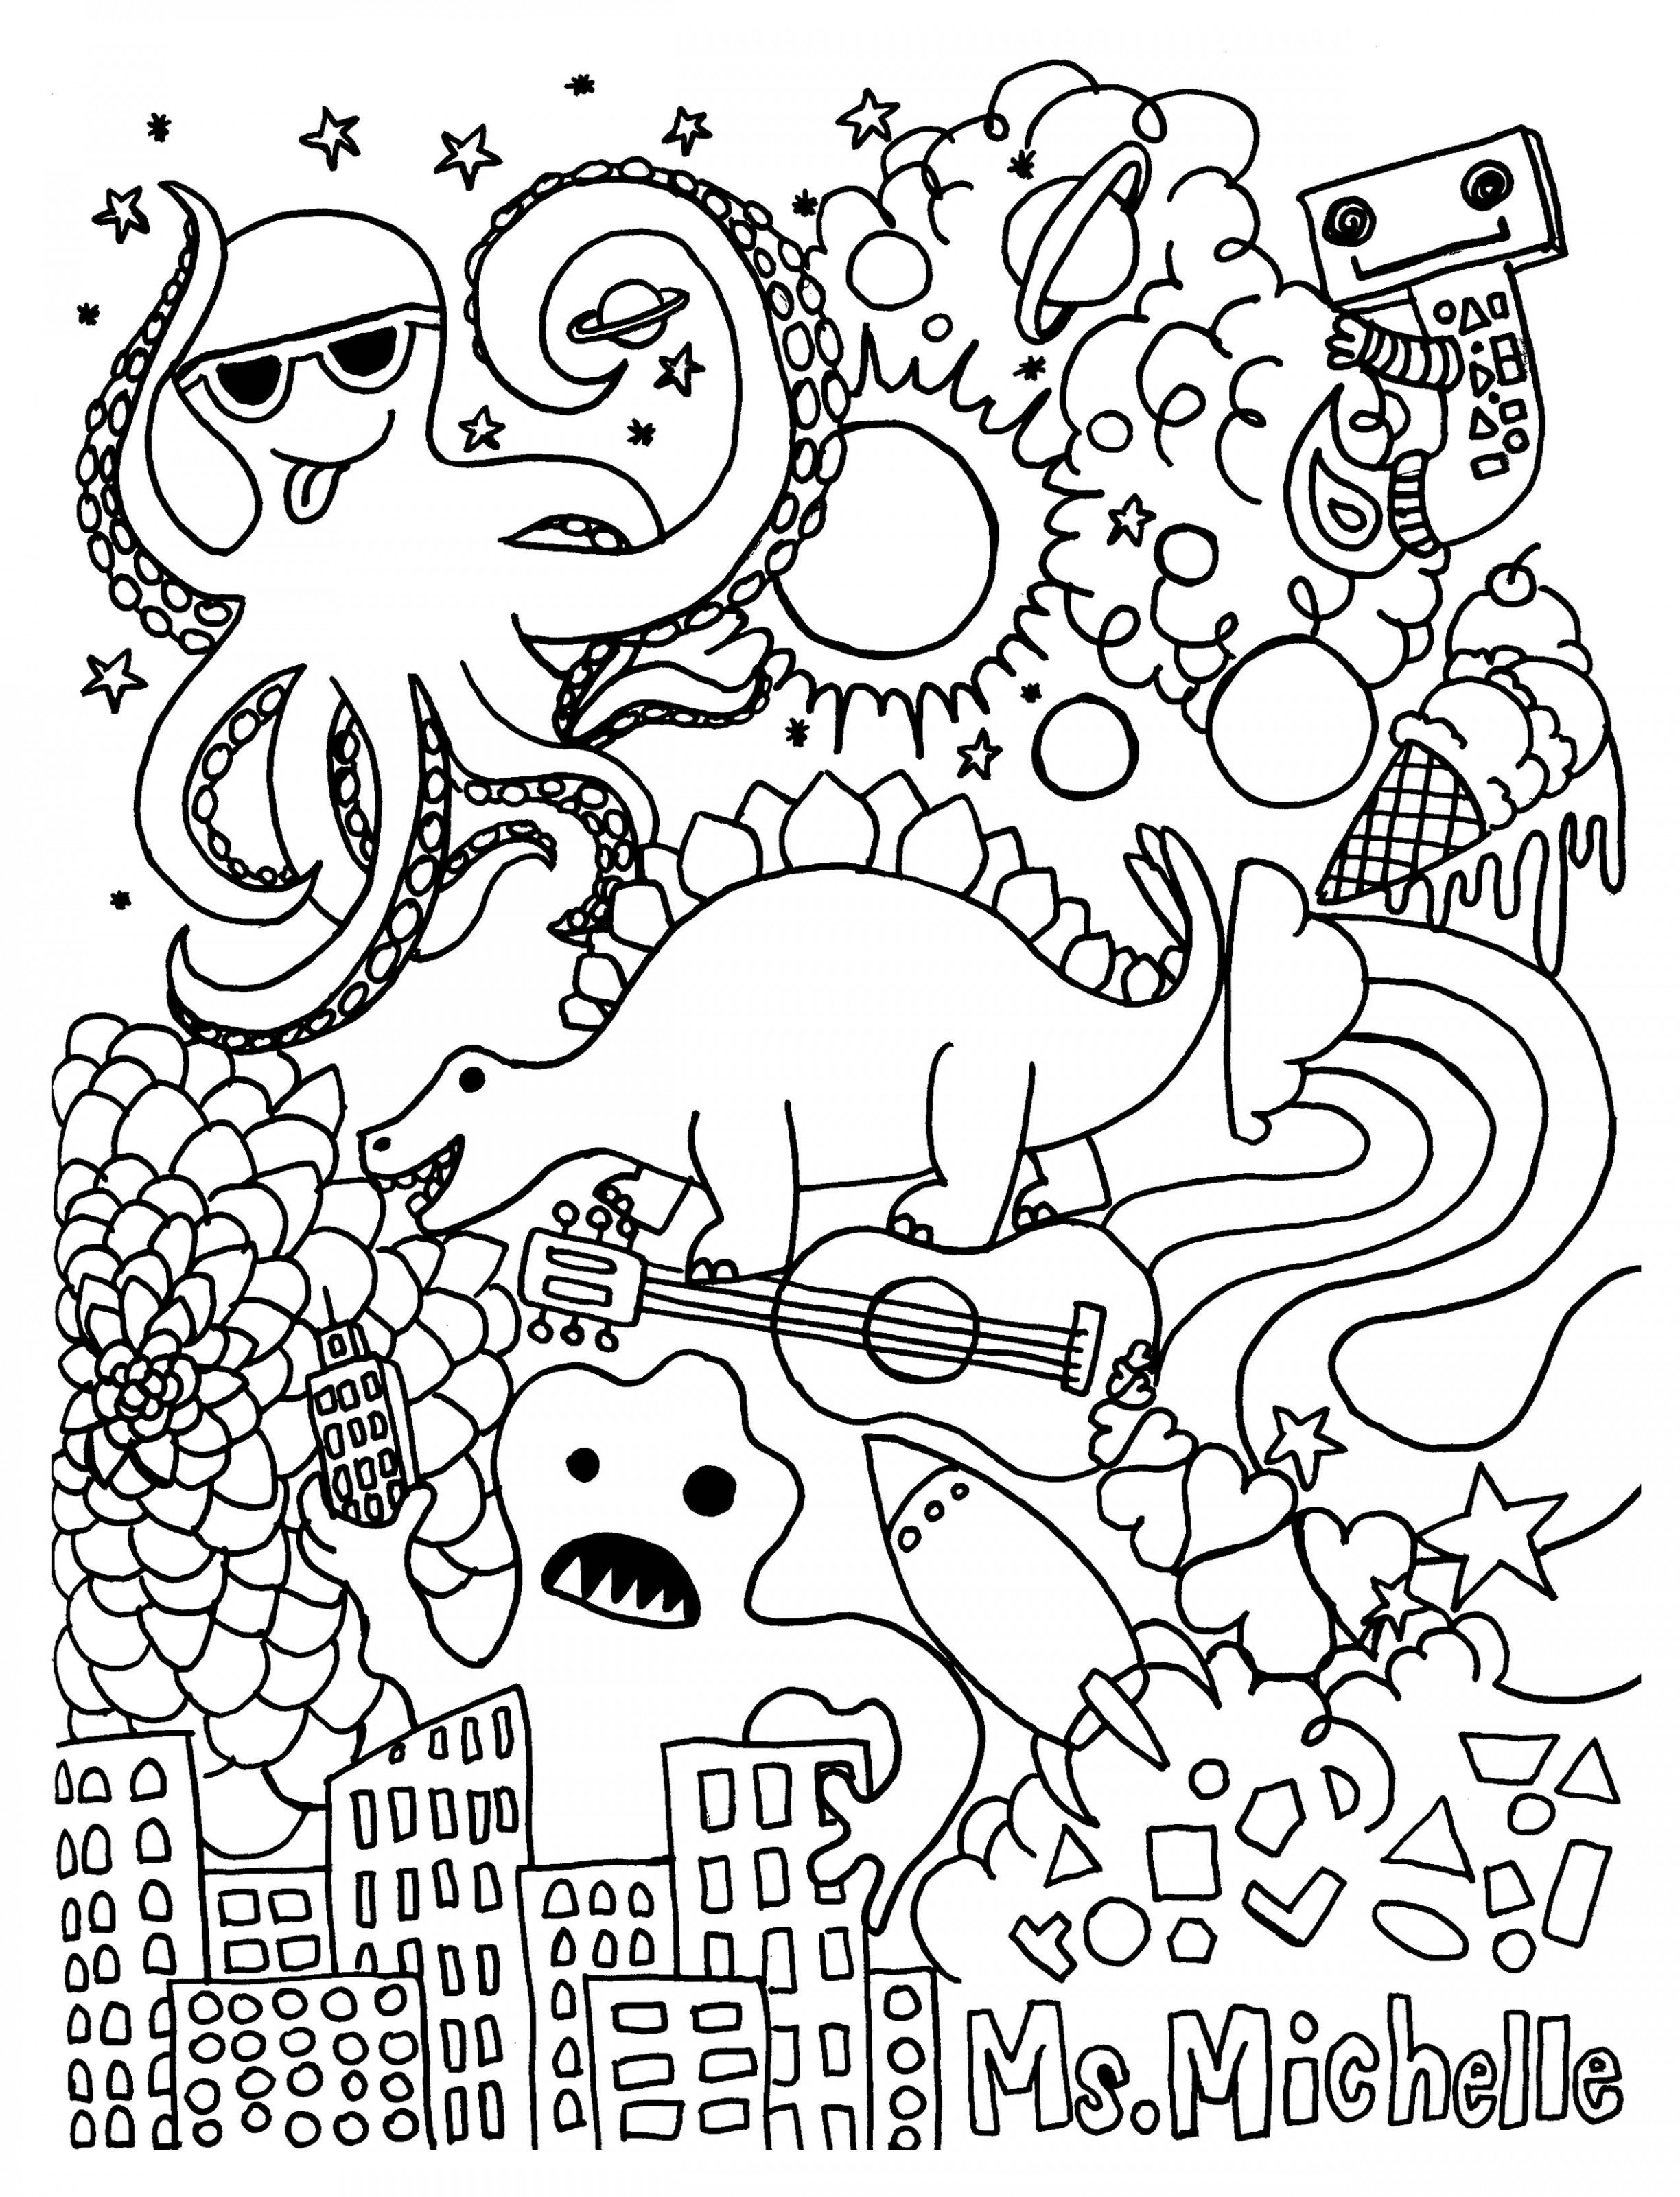 Free Heart Coloring Pages For Teenagers, Download Free Clip Art ...   3201x2448